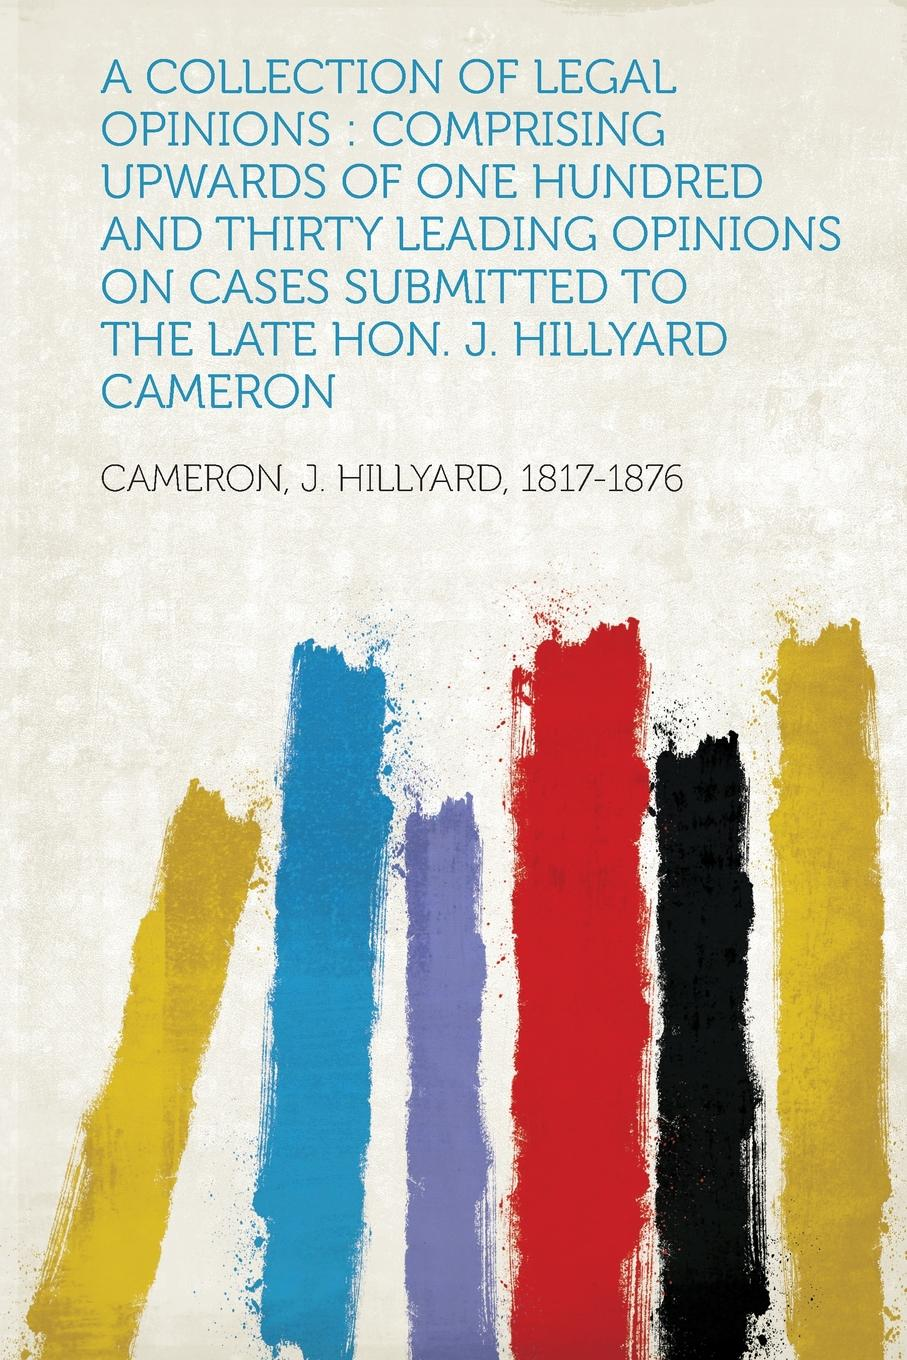 A Collection of Legal Opinions. Comprising Upwards of One Hundred and Thirty Leading Opinions on Cases Submitted to the Late Hon. J. Hillyard Cameron